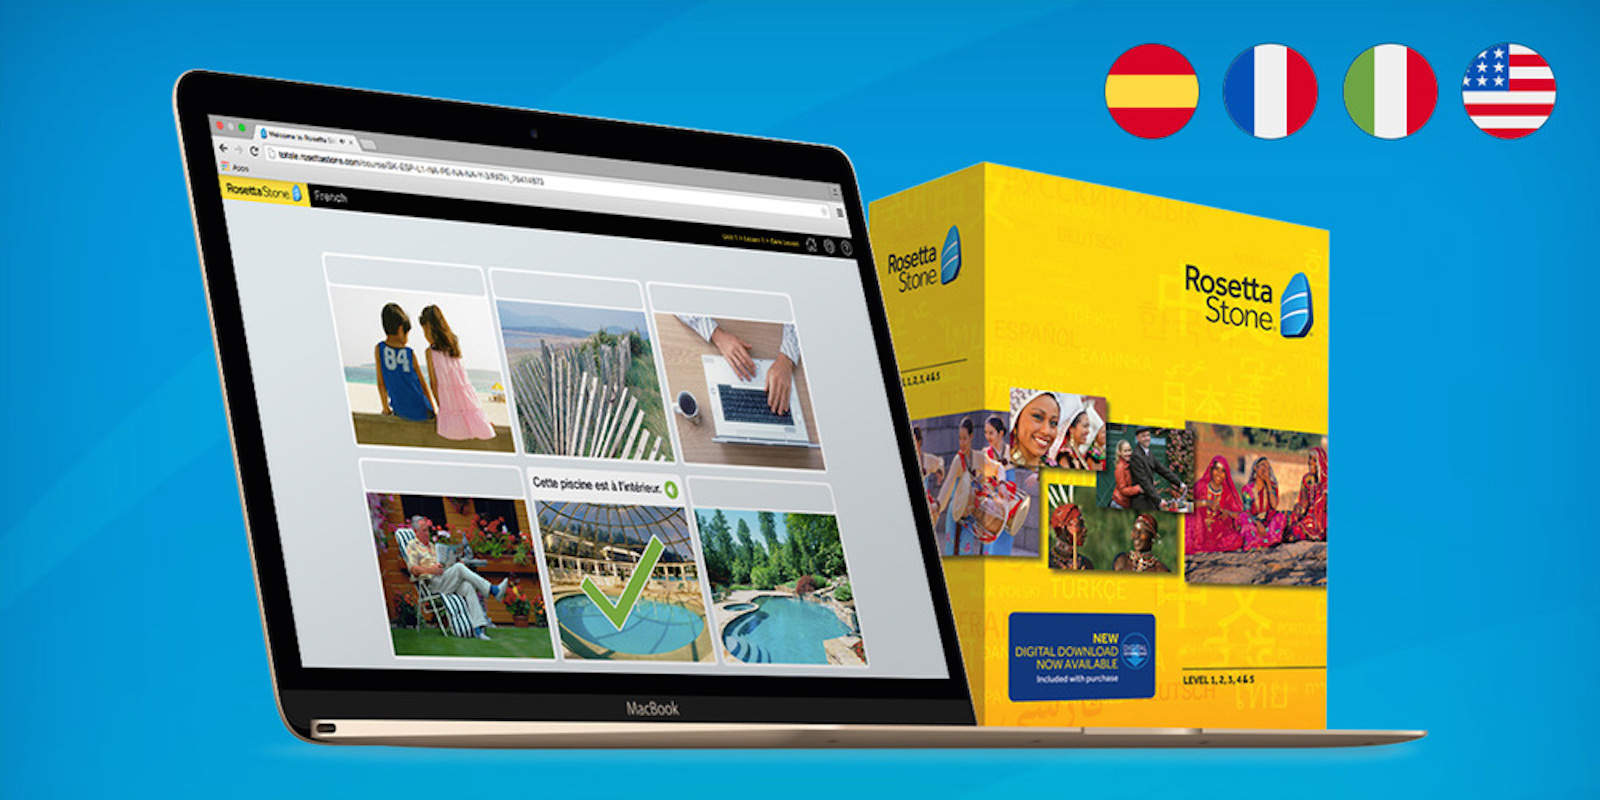 Rosetta Stone set the standard for language learning software, and this box set shows why.